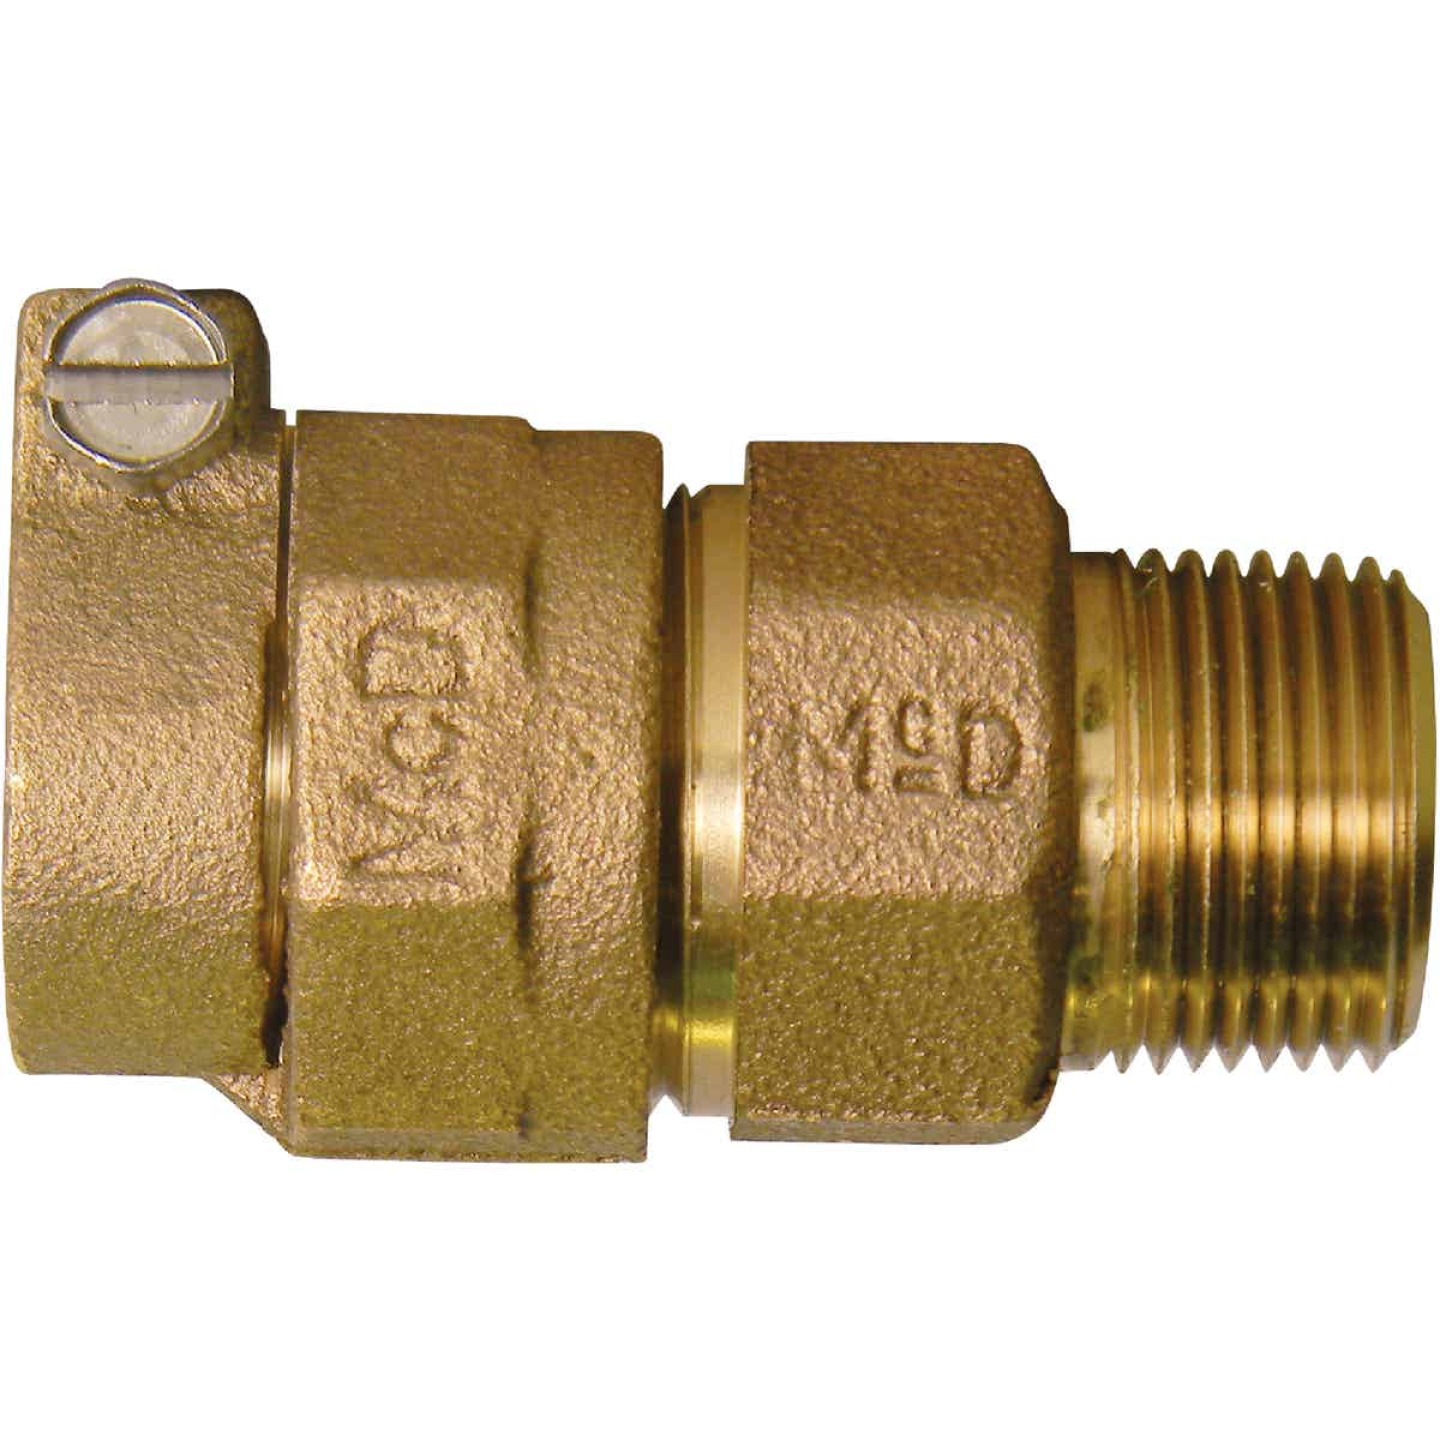 A Y McDonald 1 In. CTS x 3/4 In. MIPT Brass Low Lead Connector Image 1